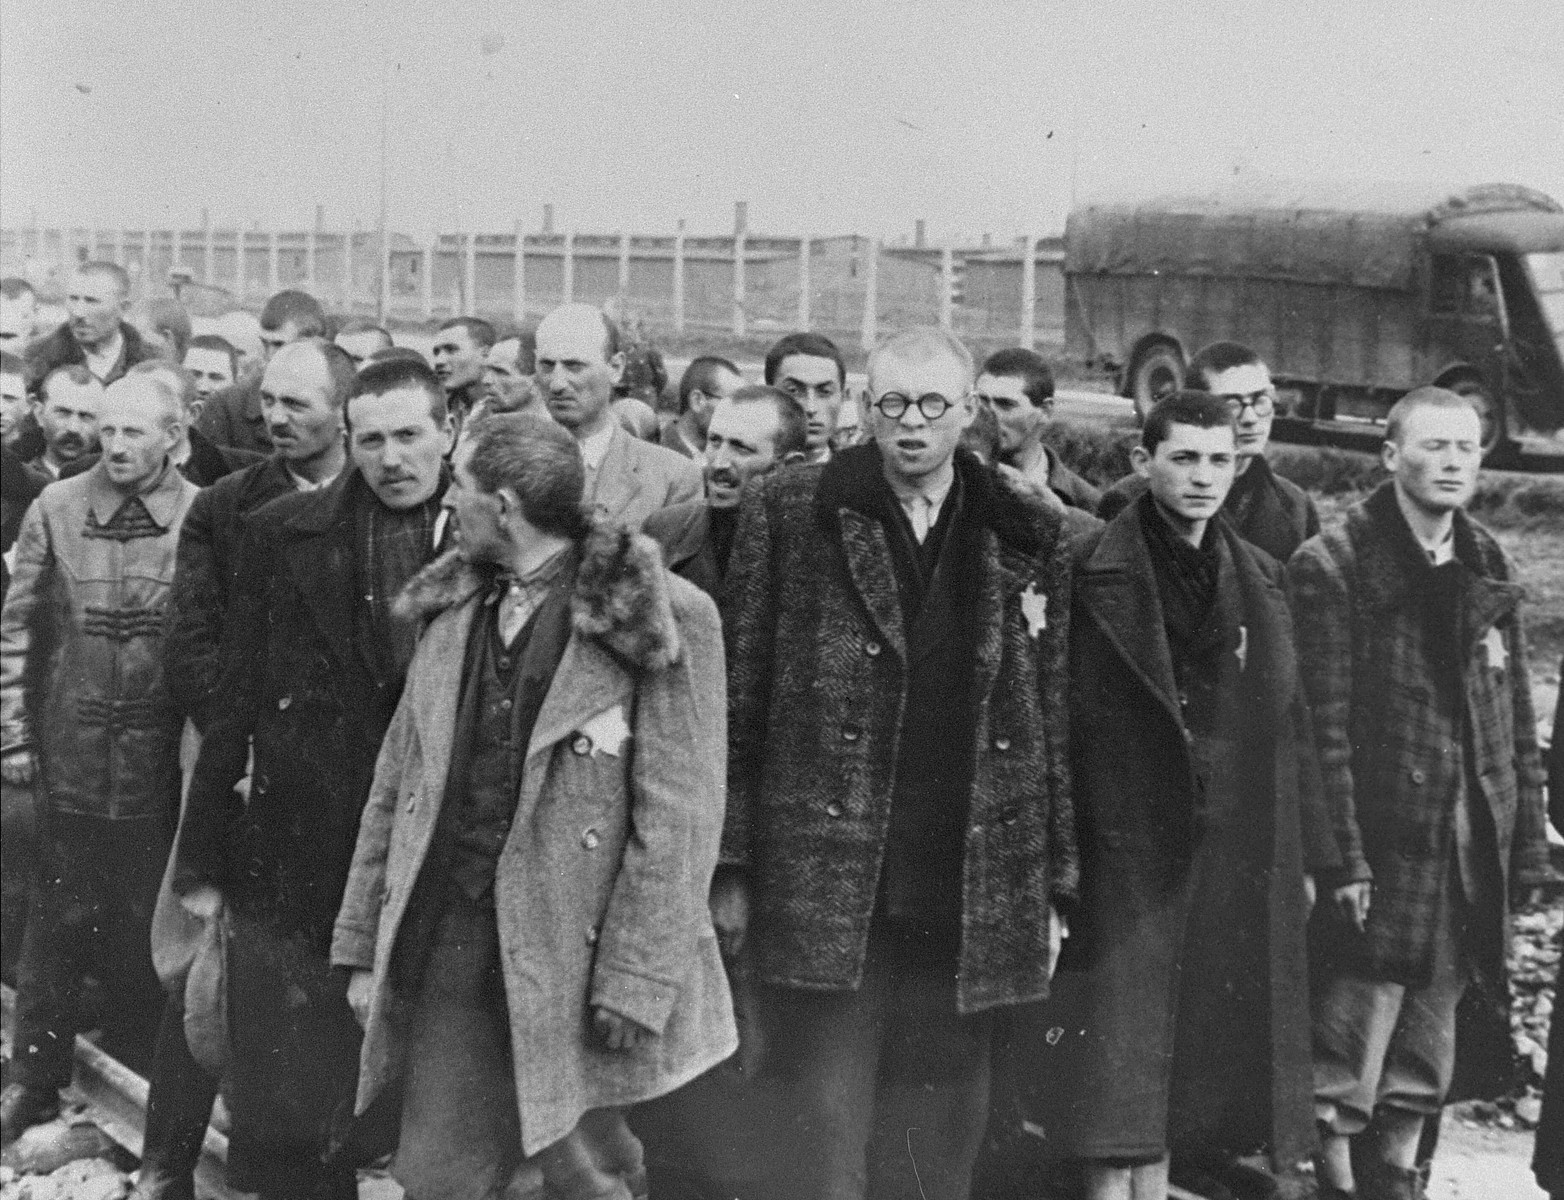 Jews from Subcarpathian Rus who have been selected for forced labor at Auschwitz-Birkenau, wait to be taken to another section of the camp.